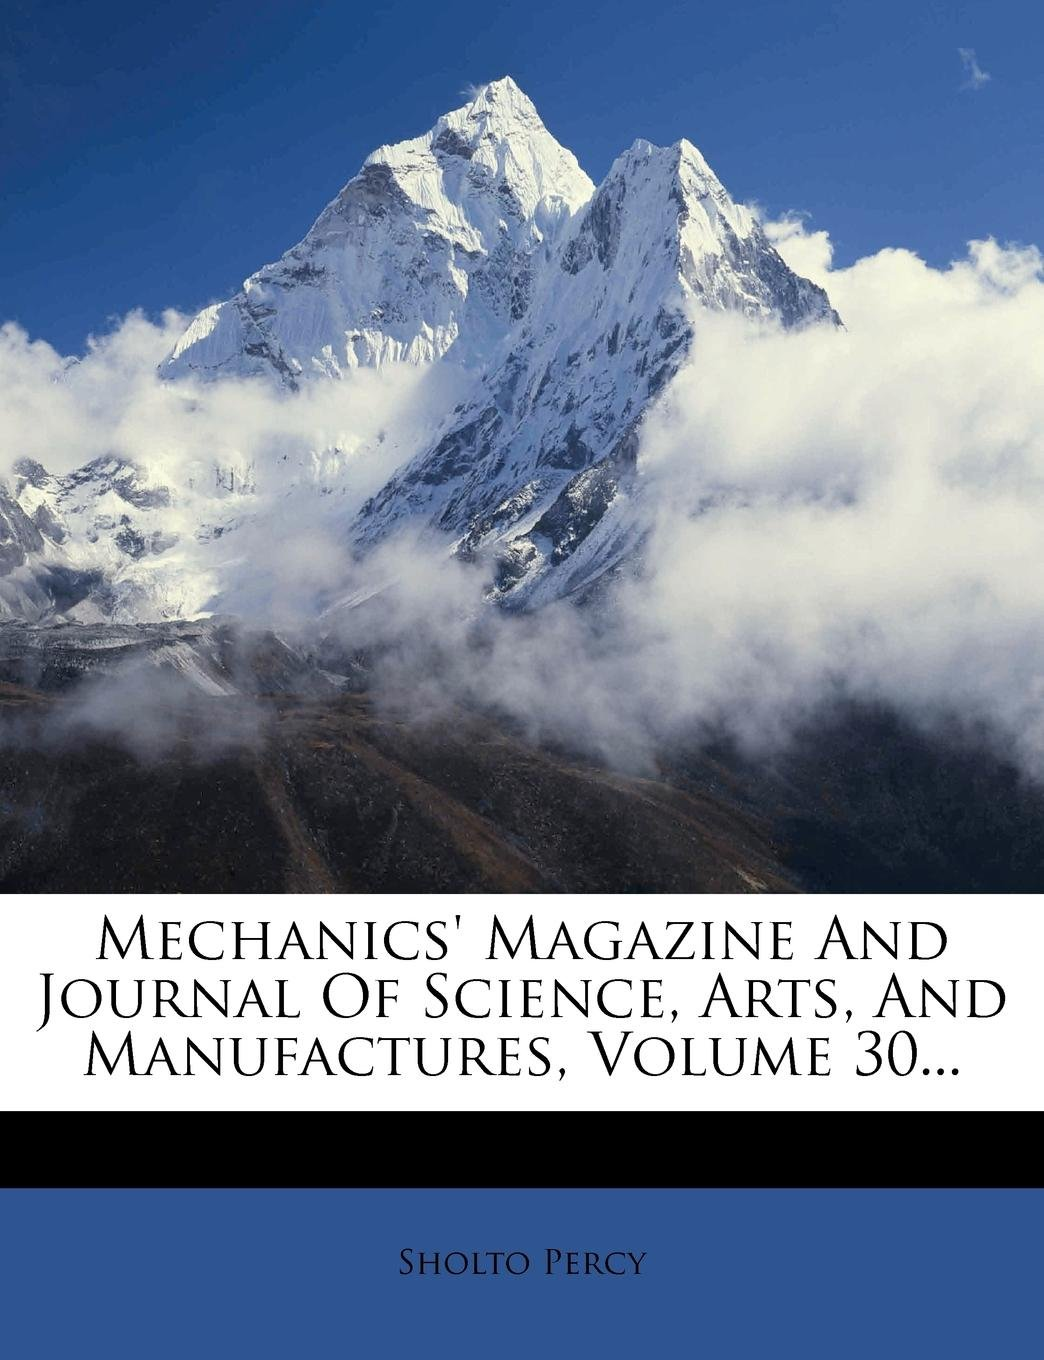 Download Mechanics' Magazine And Journal Of Science, Arts, And Manufactures, Volume 30... ebook